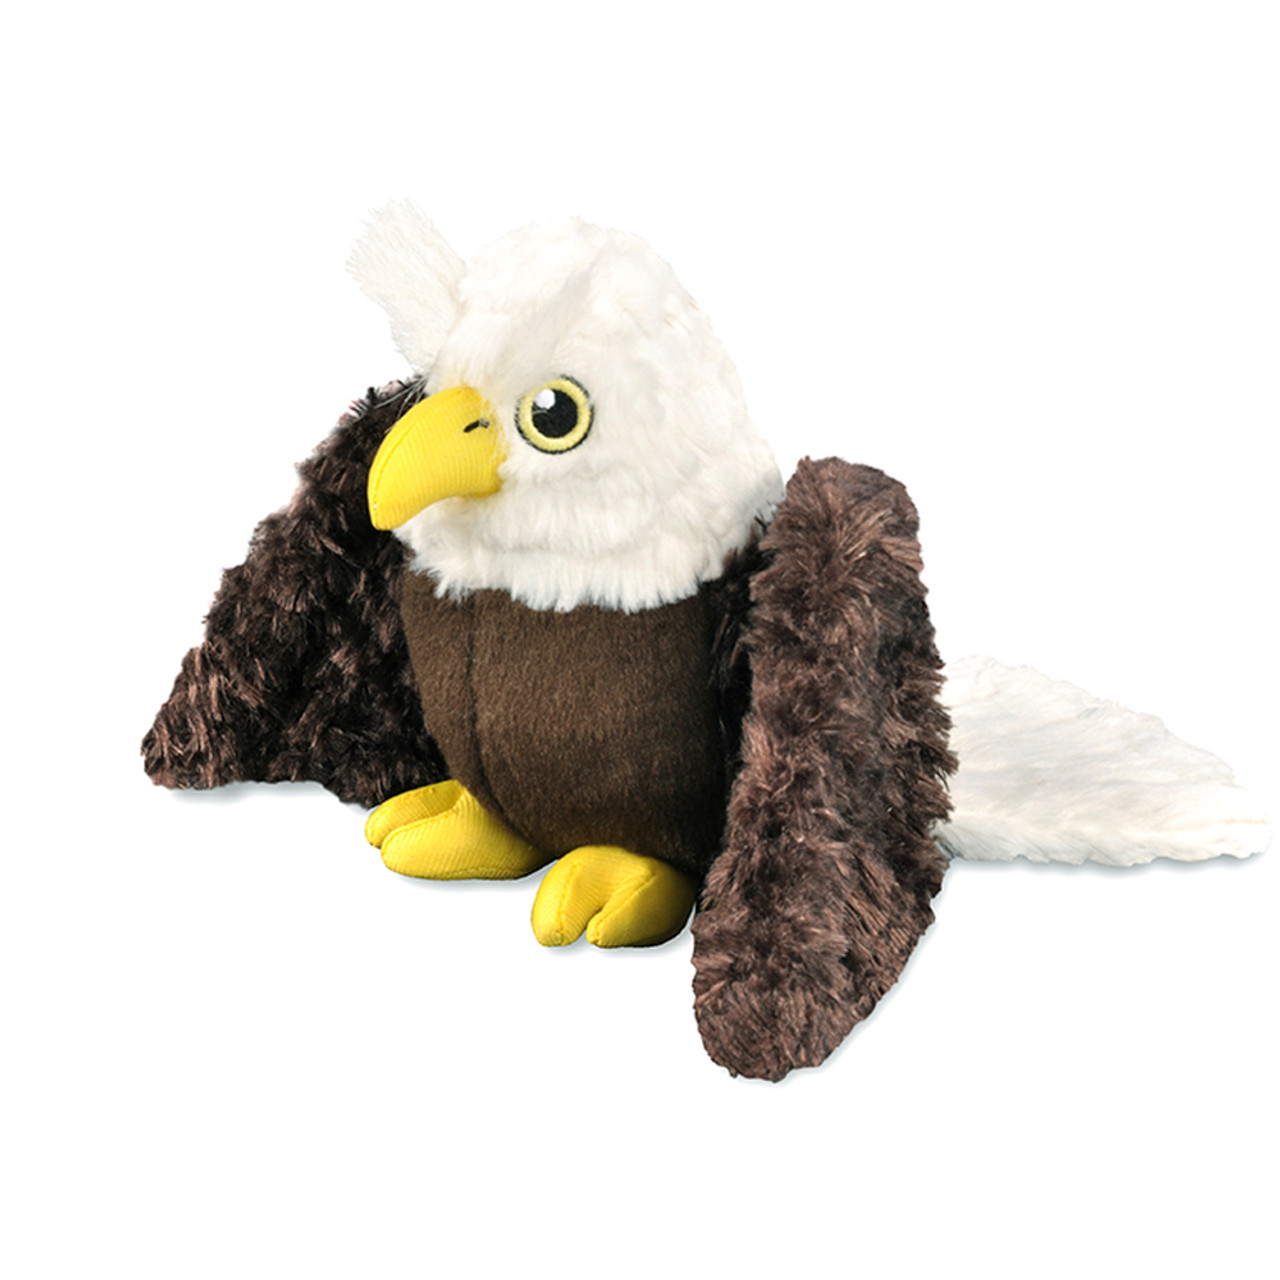 P.L.A.Y. Fletching Flock Edgar The Eagle Plush Dog Toy